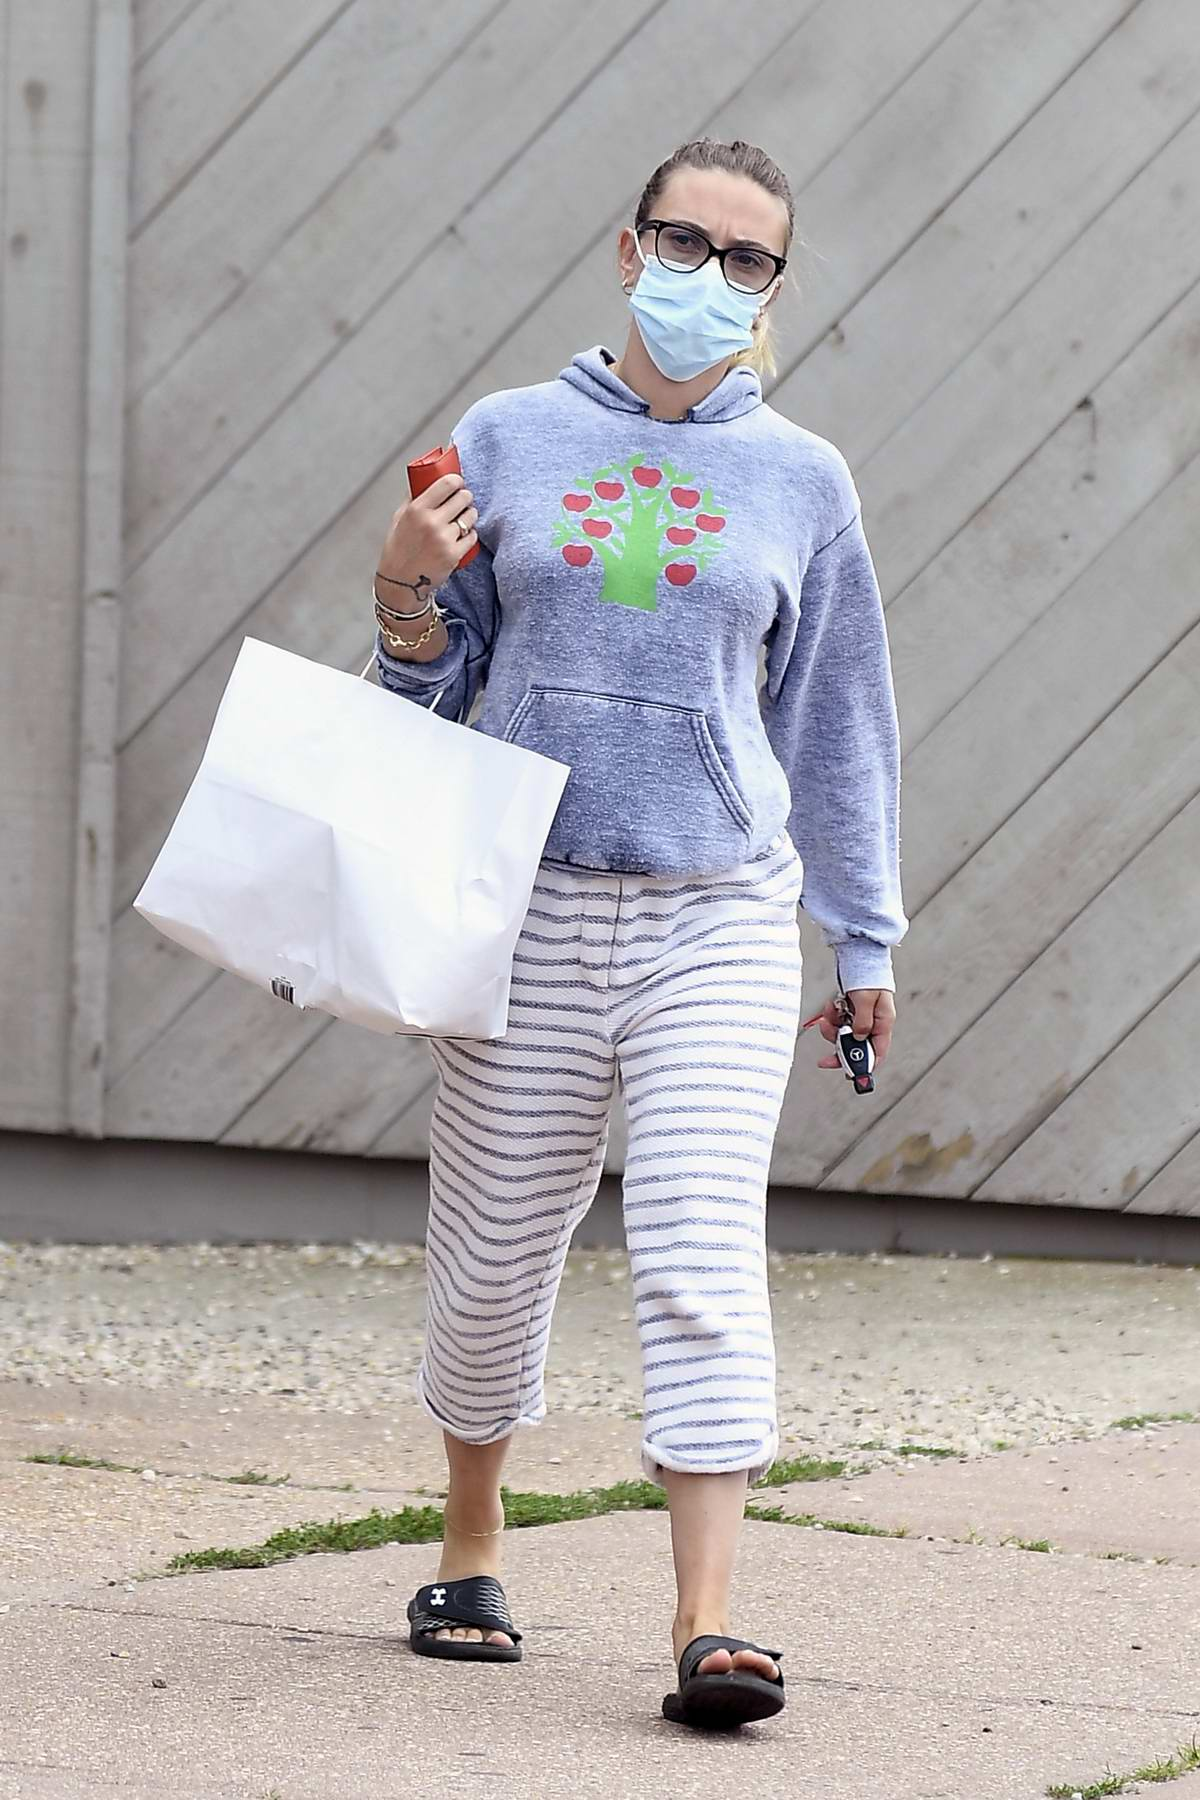 Scarlett Johansson dresses down in a hoodie and sweatpants as she steps out to pick up breakfast in The Hamptons, New York